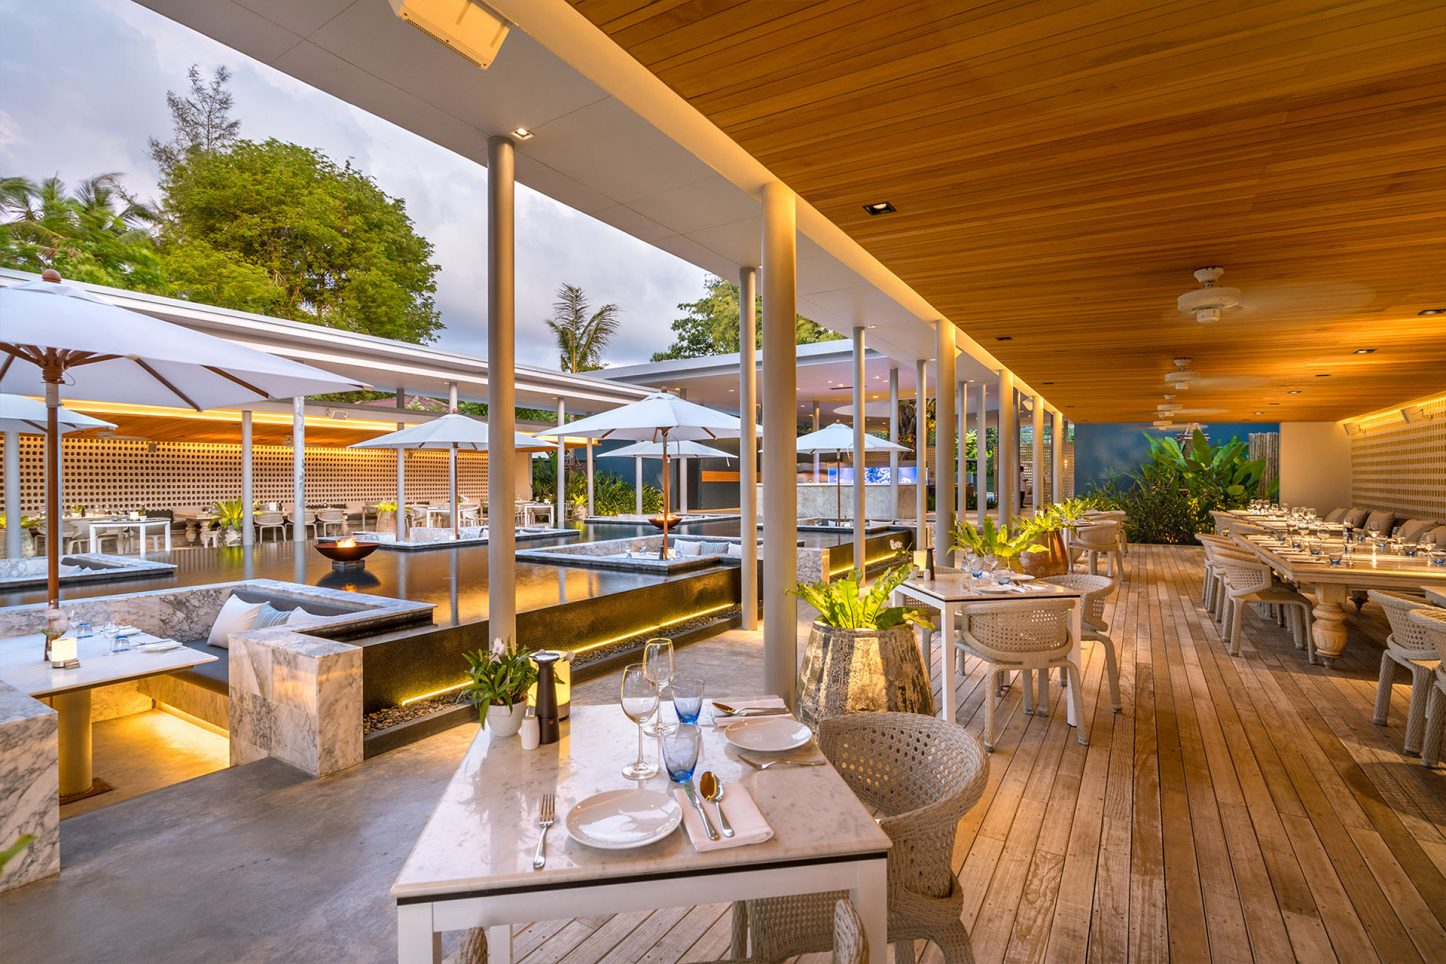 Palm Seaside Restaurant, Lounge & Bar